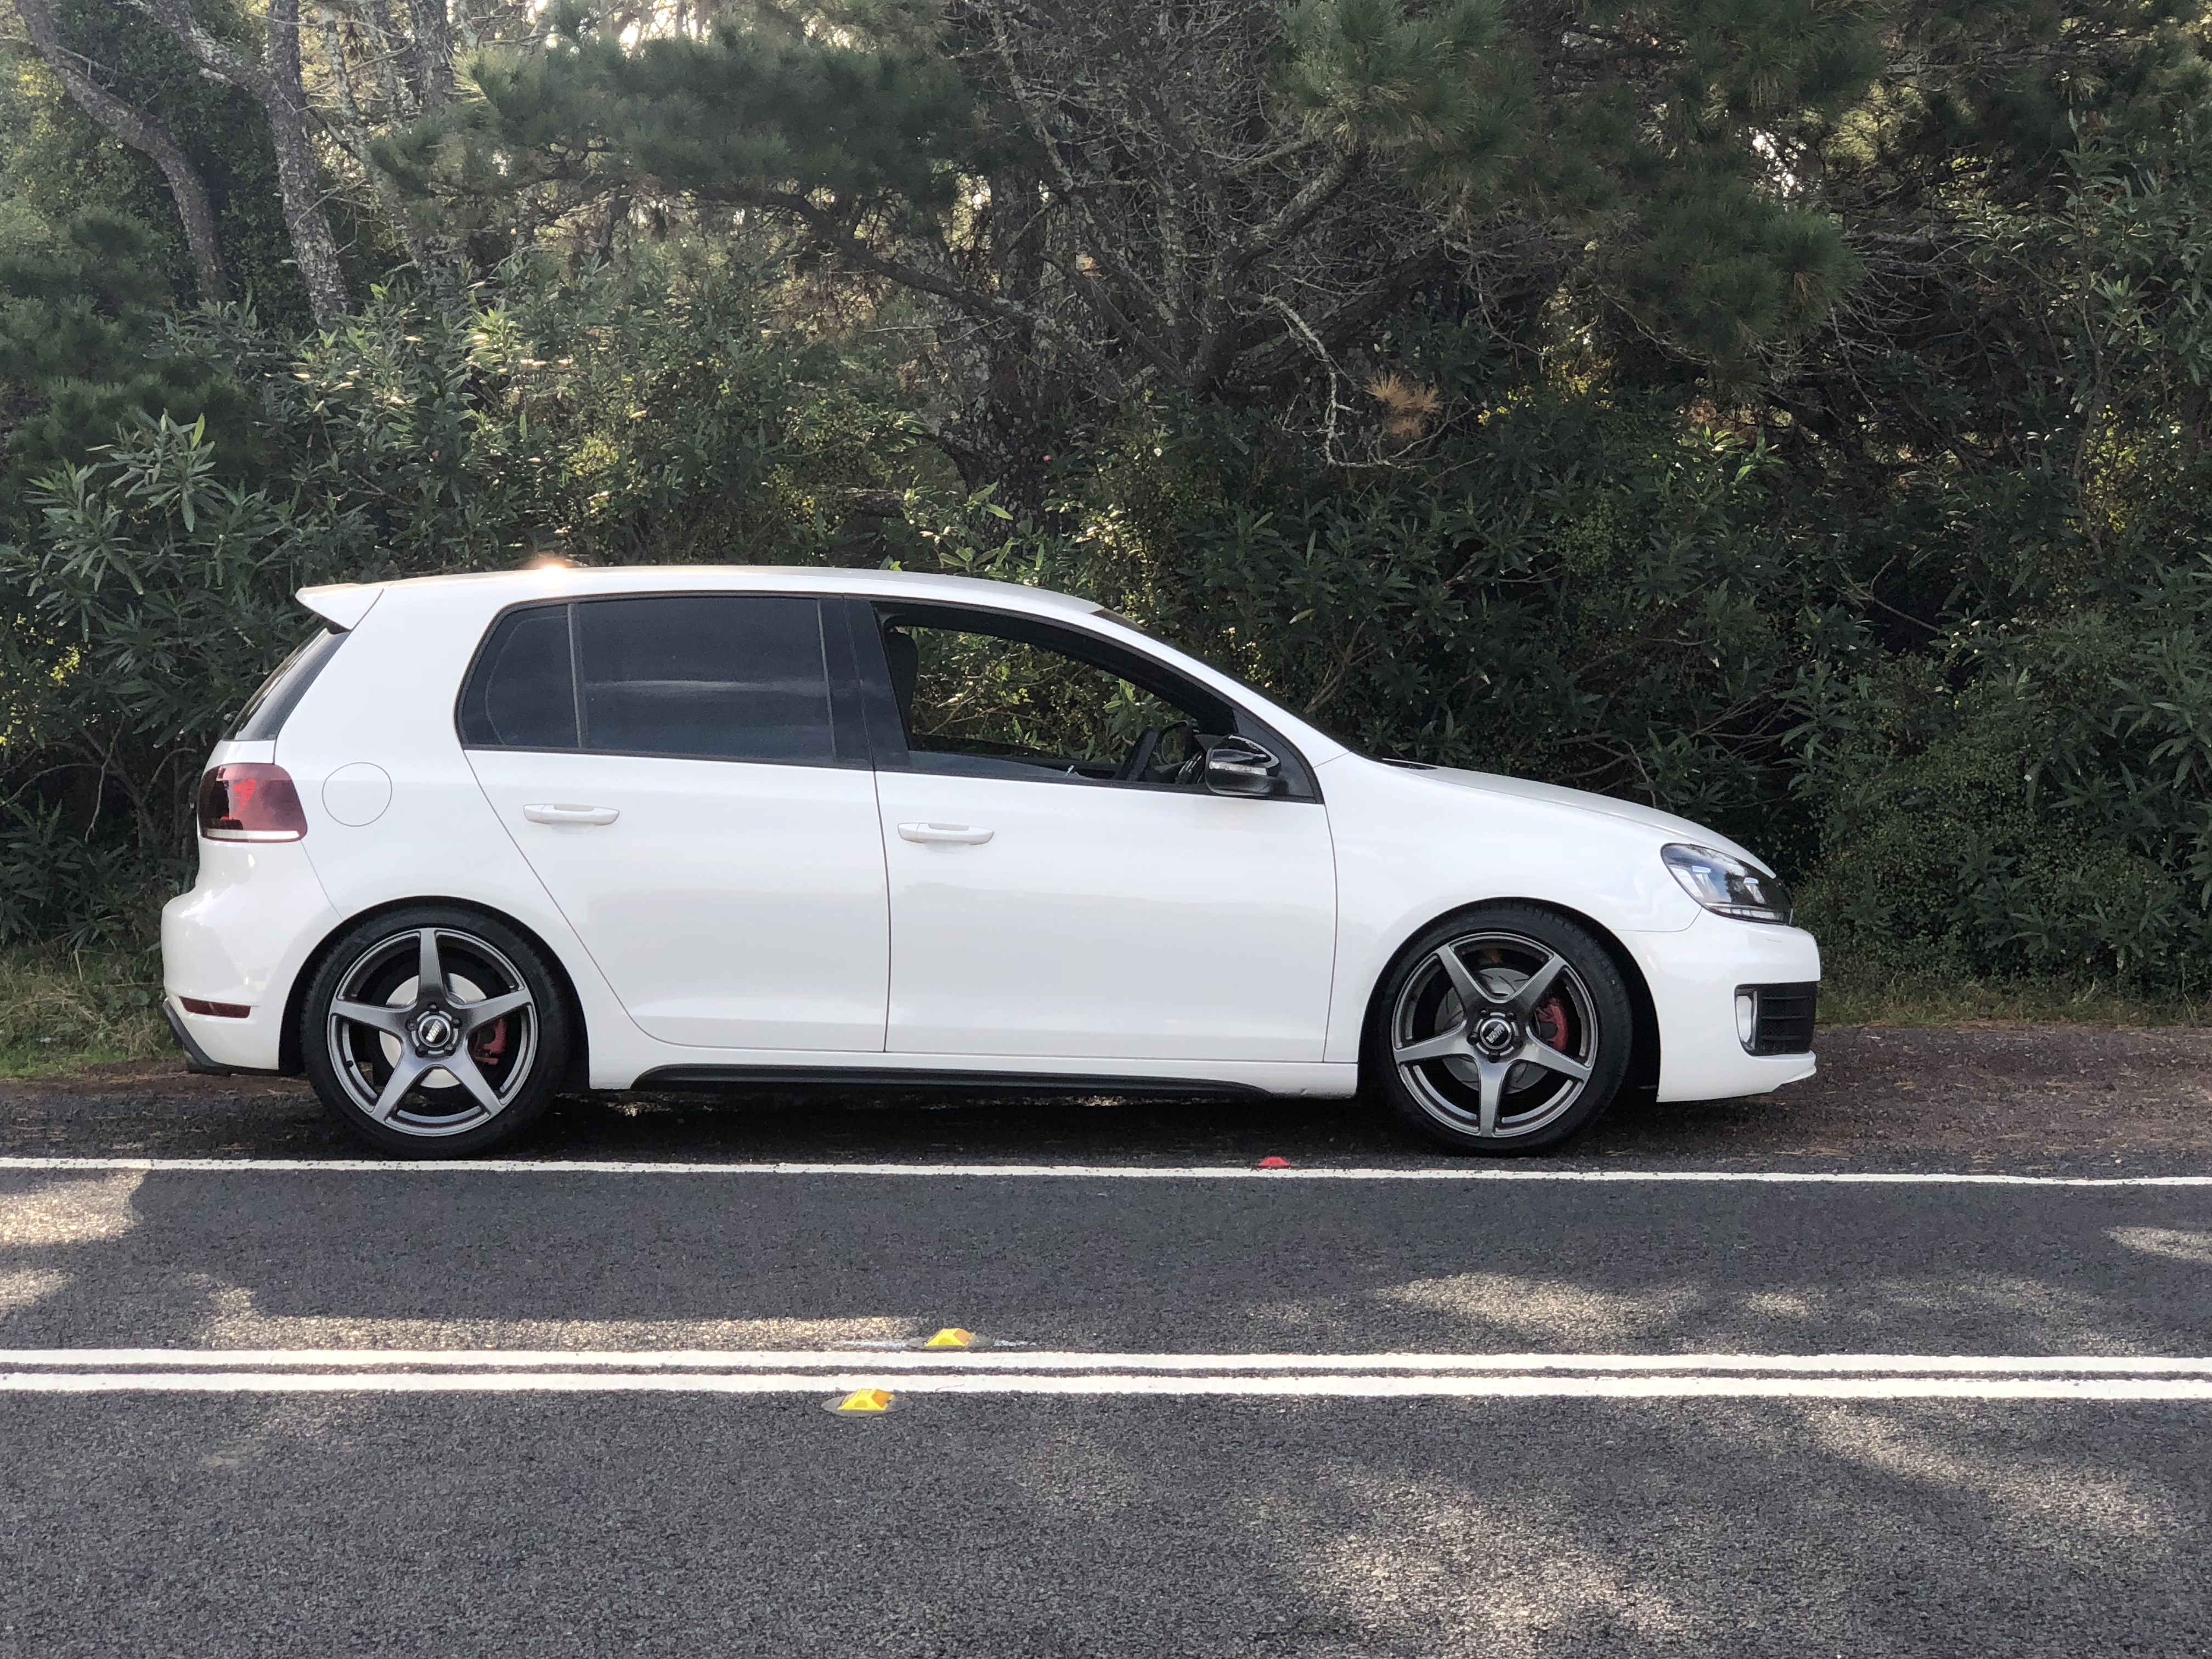 2010 Volkswagen Golf Gti Review Caradvice